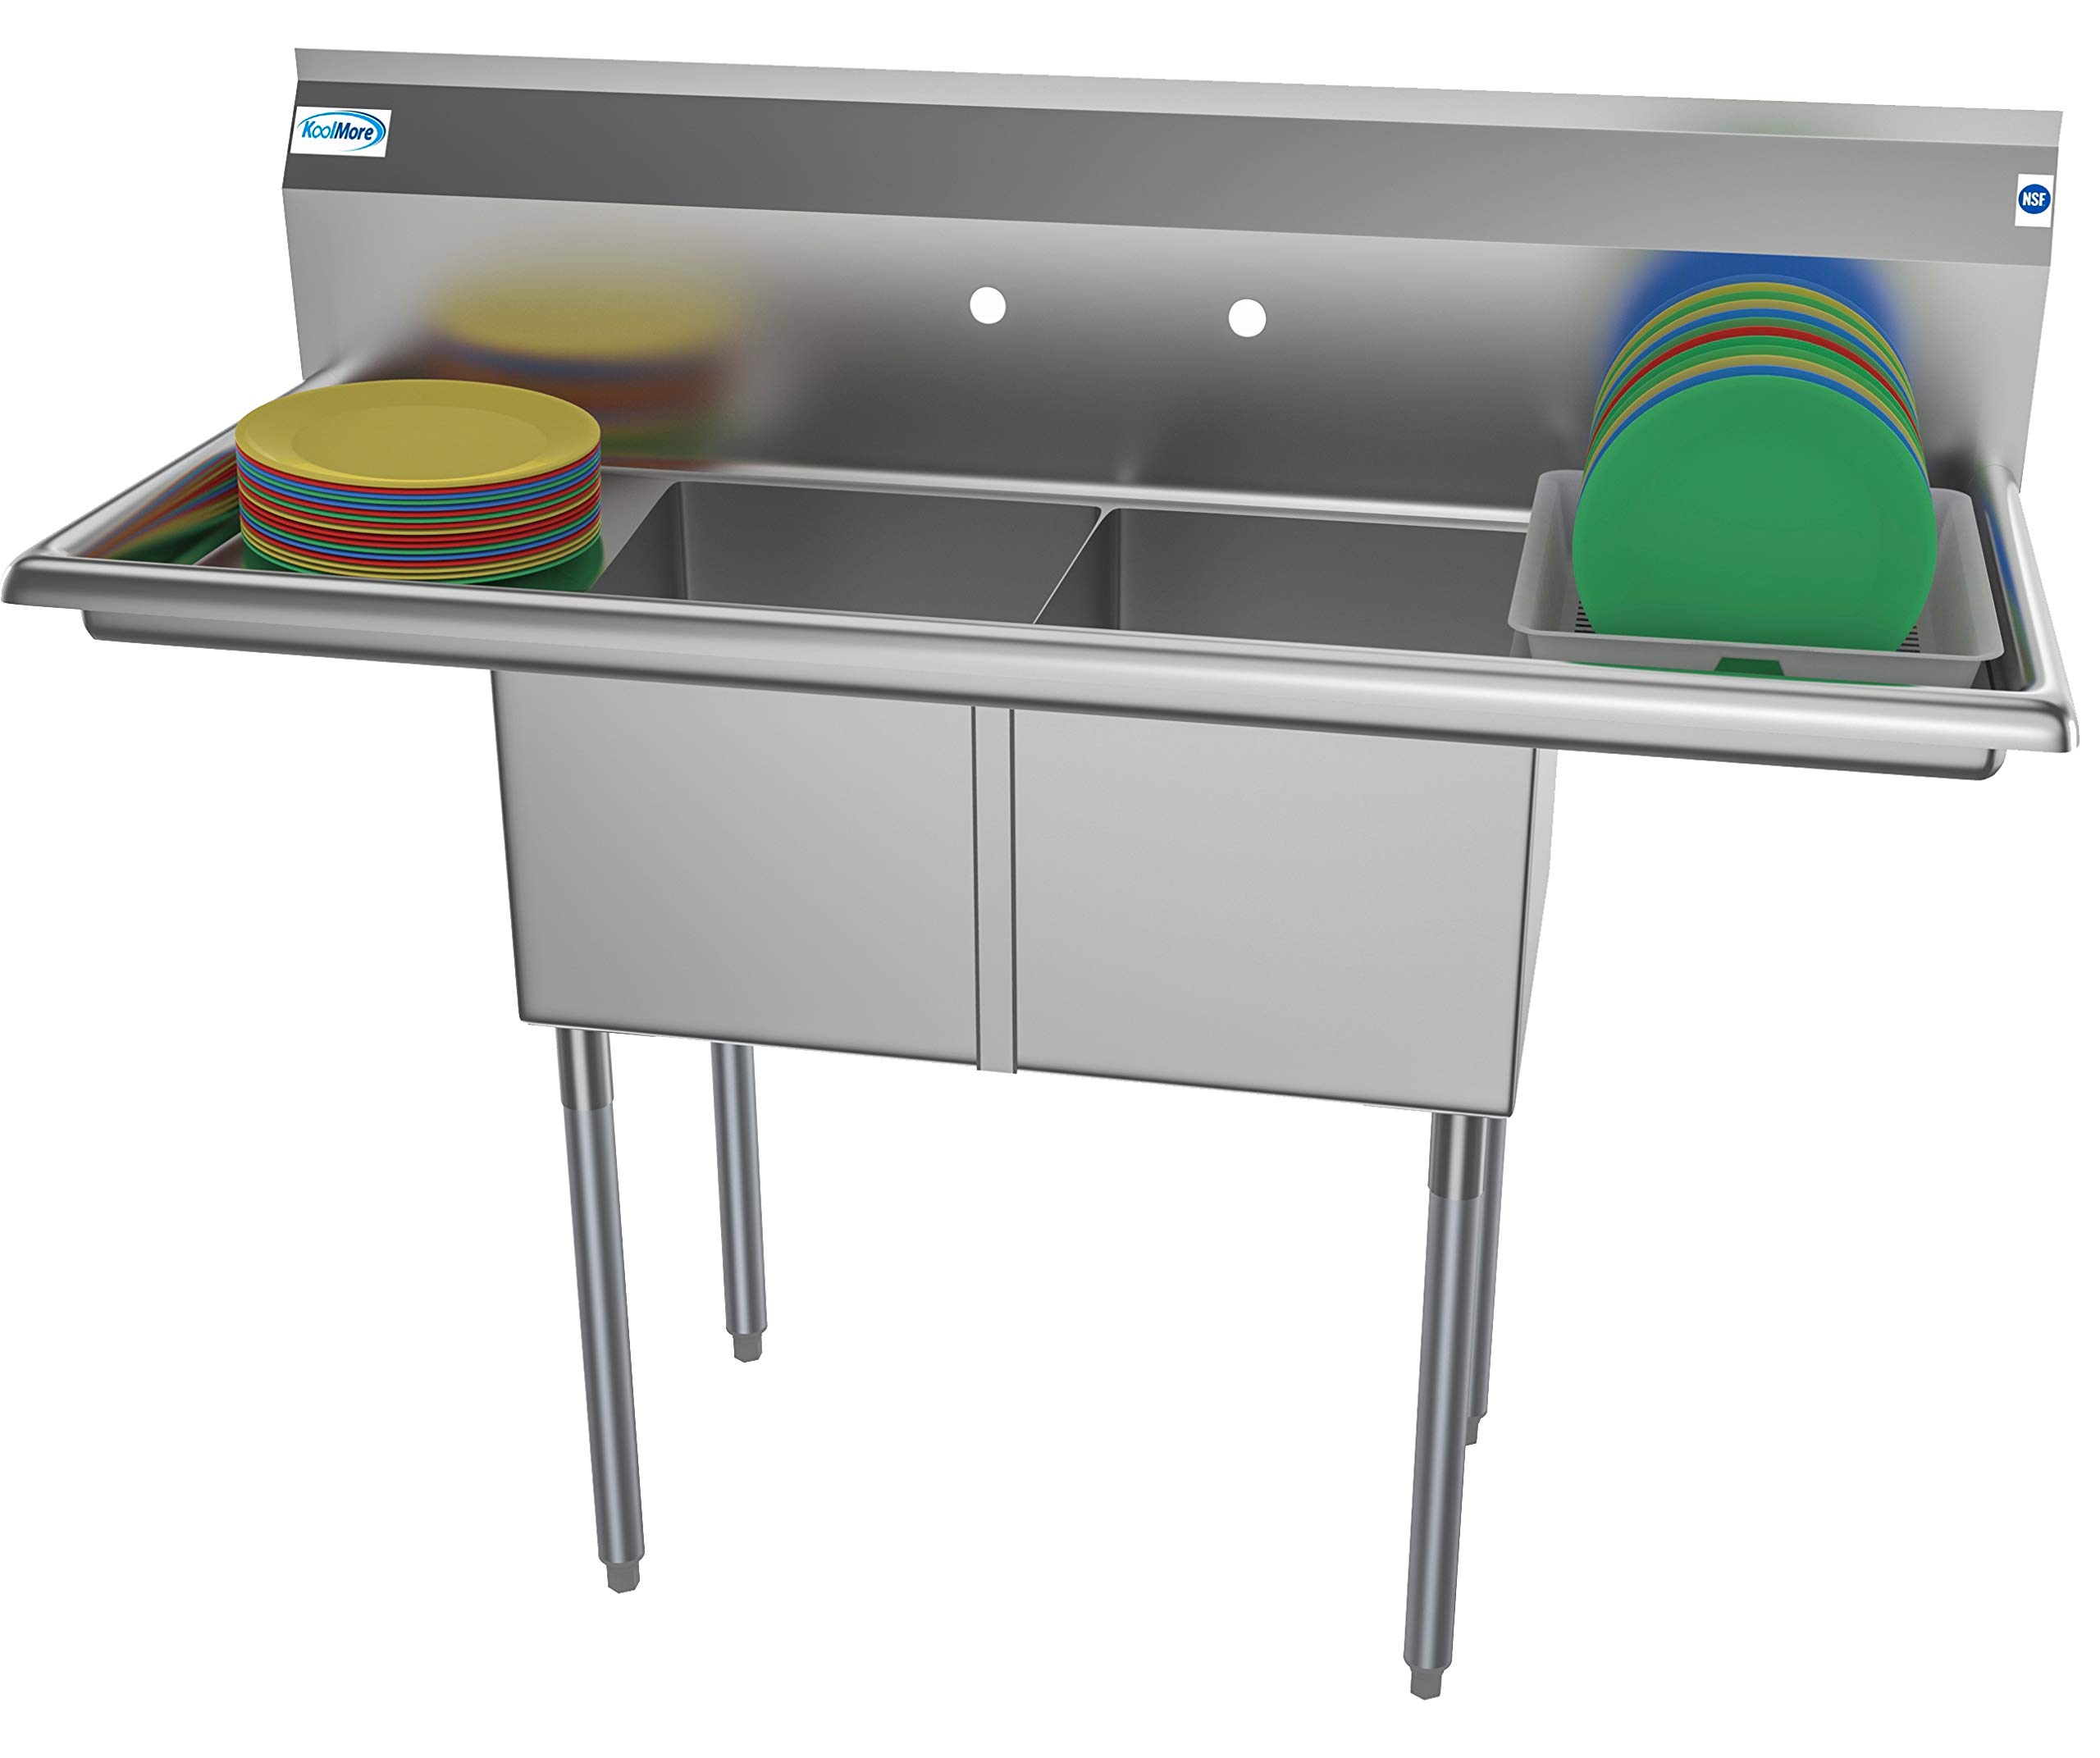 KoolMore 2 Compartment Stainless Steel NSF Commercial Kitchen Prep & Utility Sink with 2 Drainboards - Bowl Size 14'' x 16'' x 11'', Silver